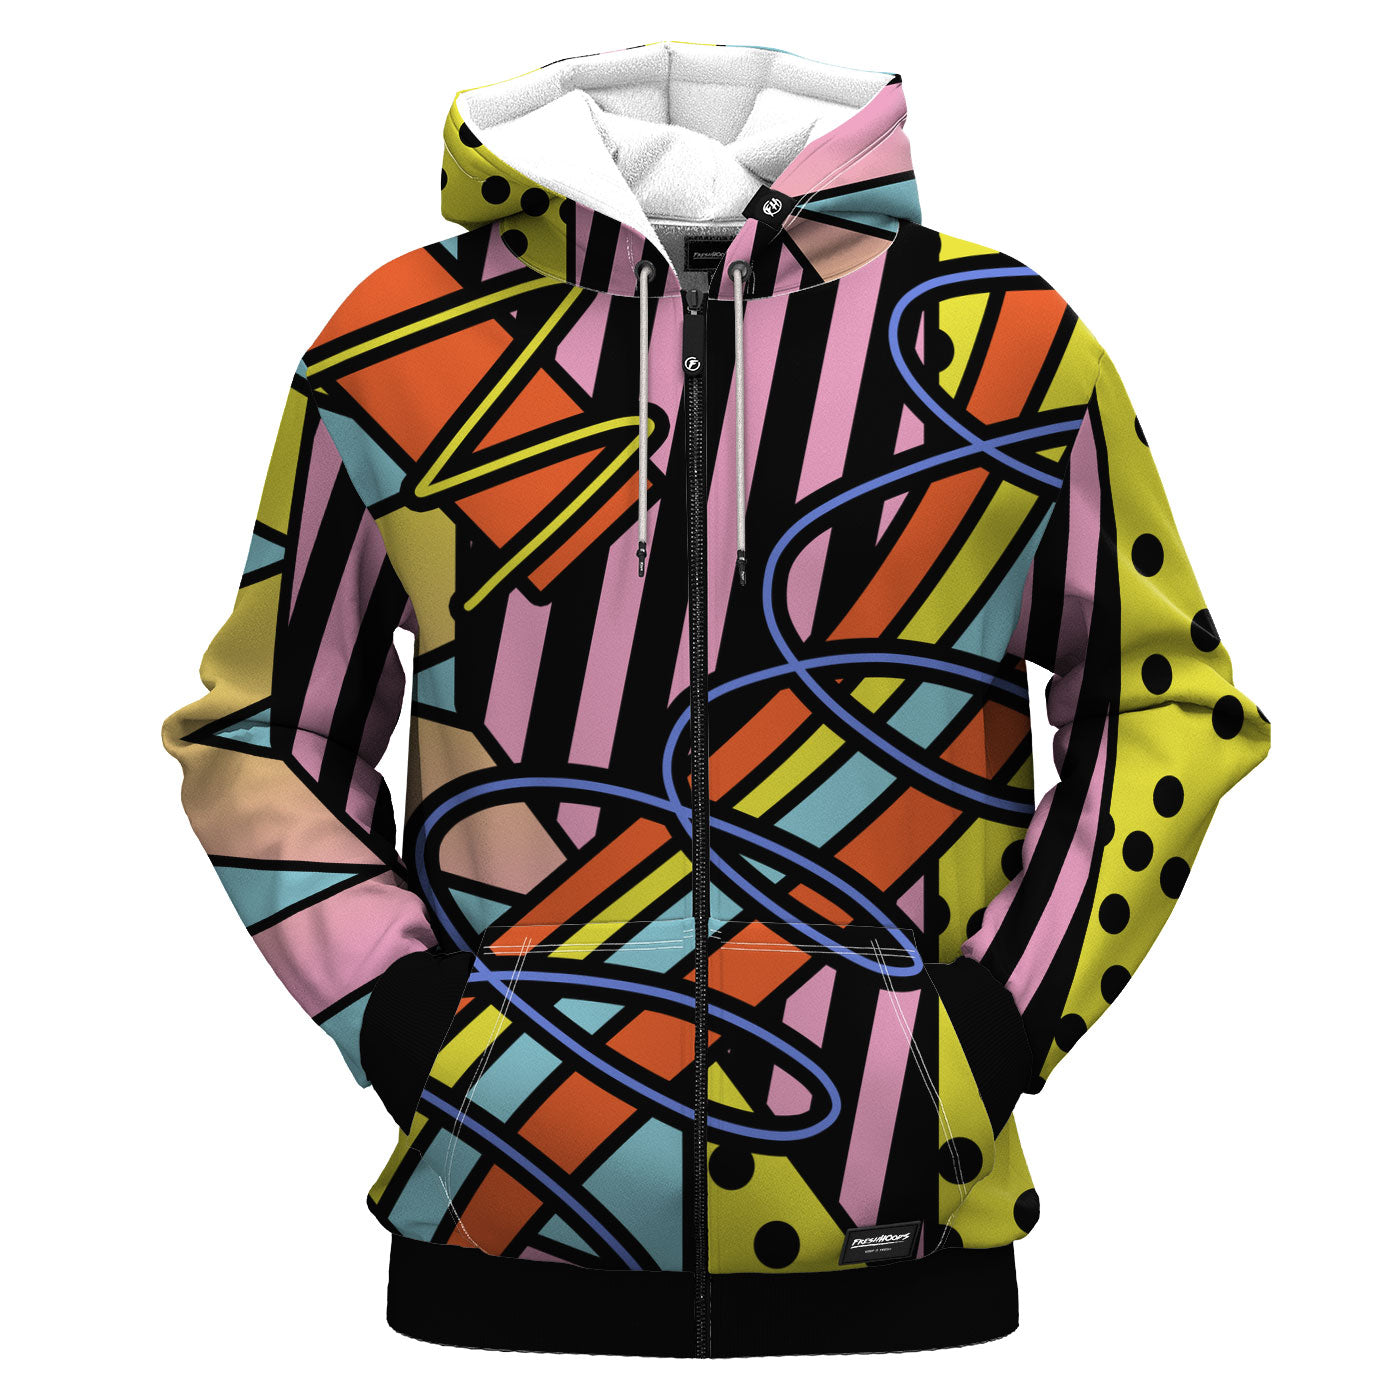 Deconstructive Geometry Zip Up Hoodie